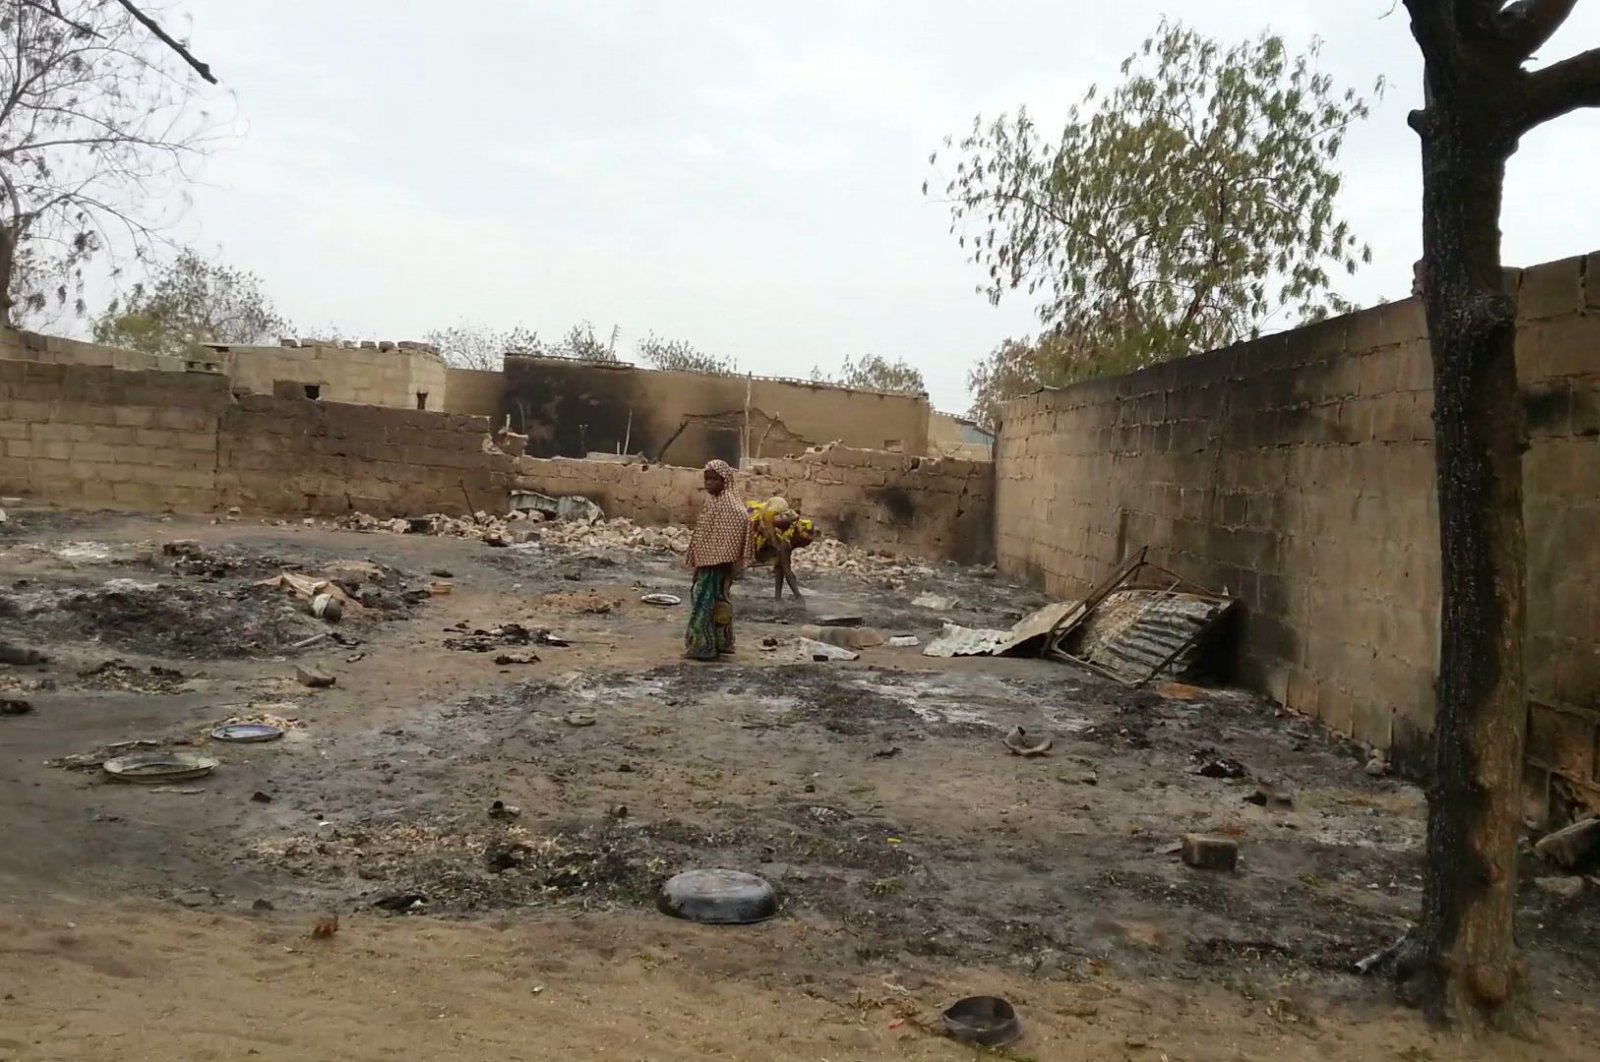 In this image shot with a mobile phone, a young girl stands amid the burned ruins of Baga, Nigeria, April 21, 2013. (AP Photo)